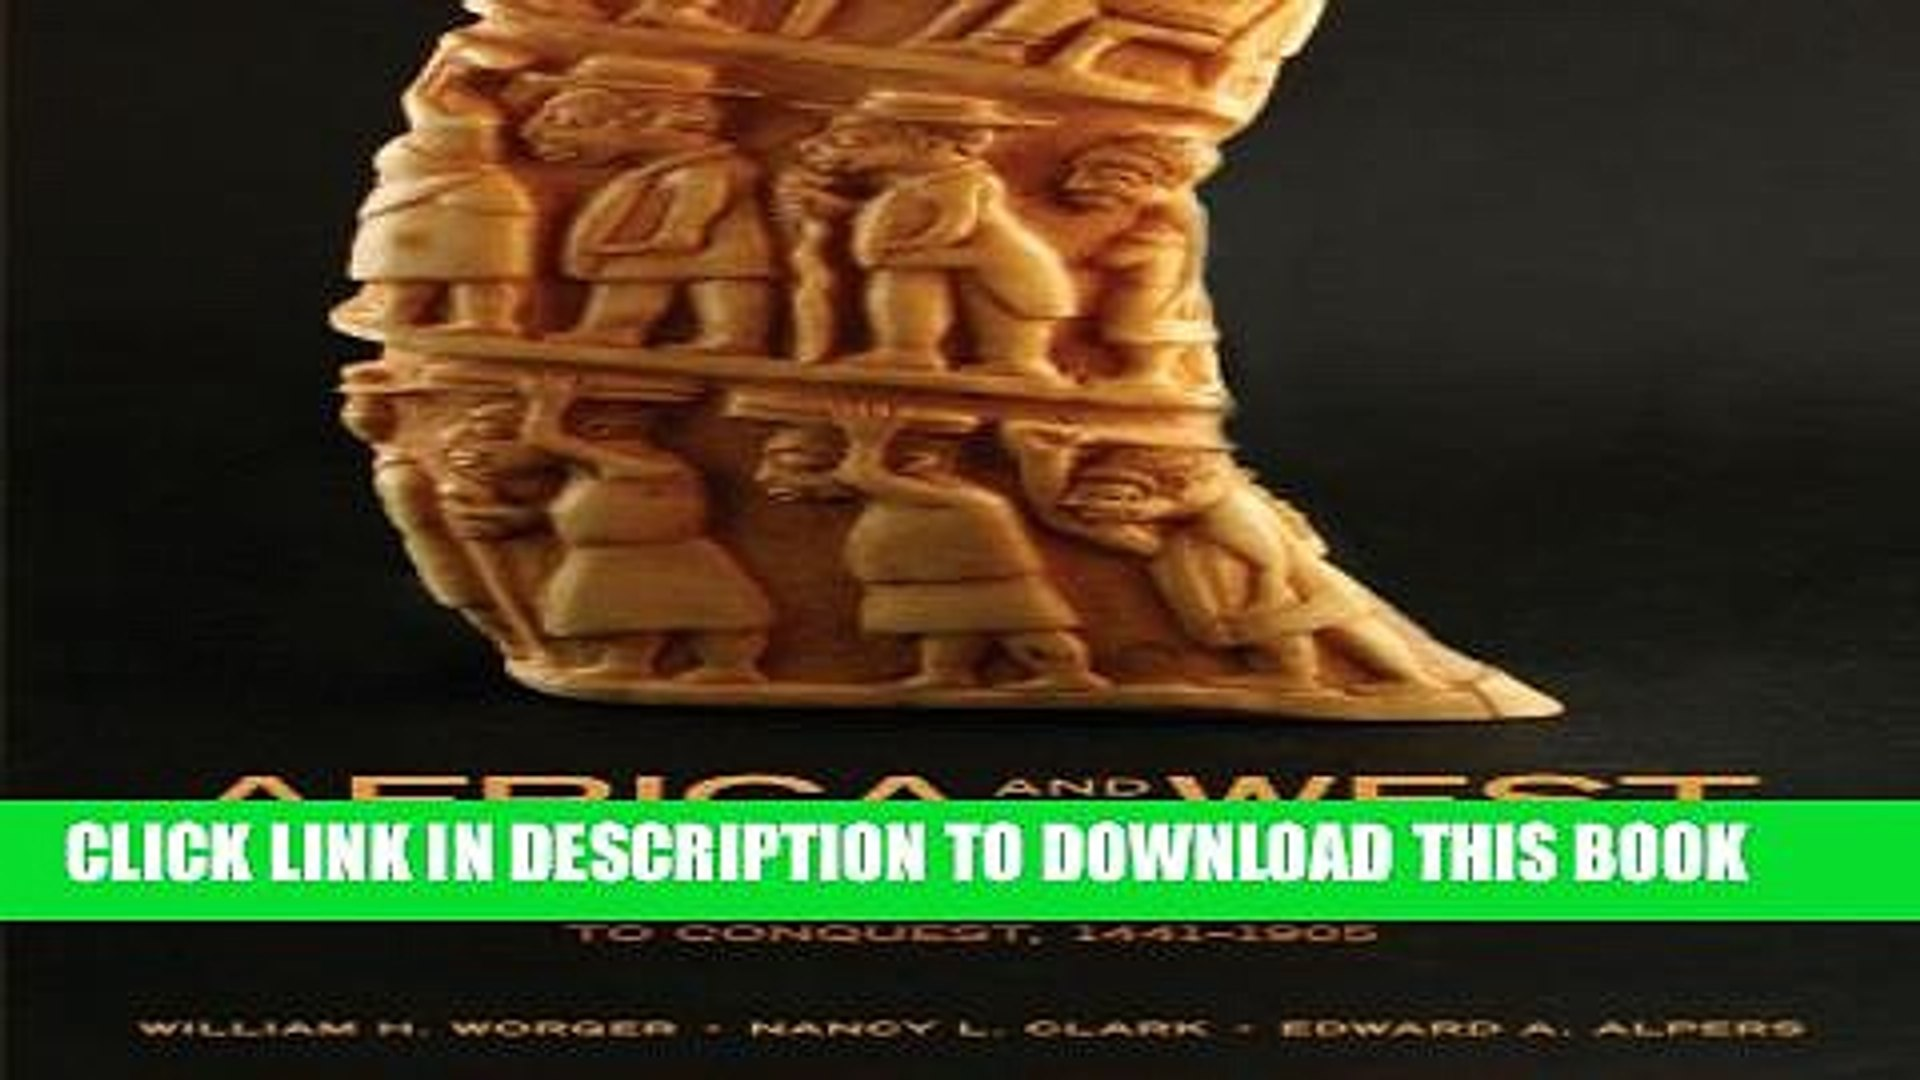 [PDF] Africa and the West: A Documentary History, Vol. 1: From the Slave Trade to Conquest,